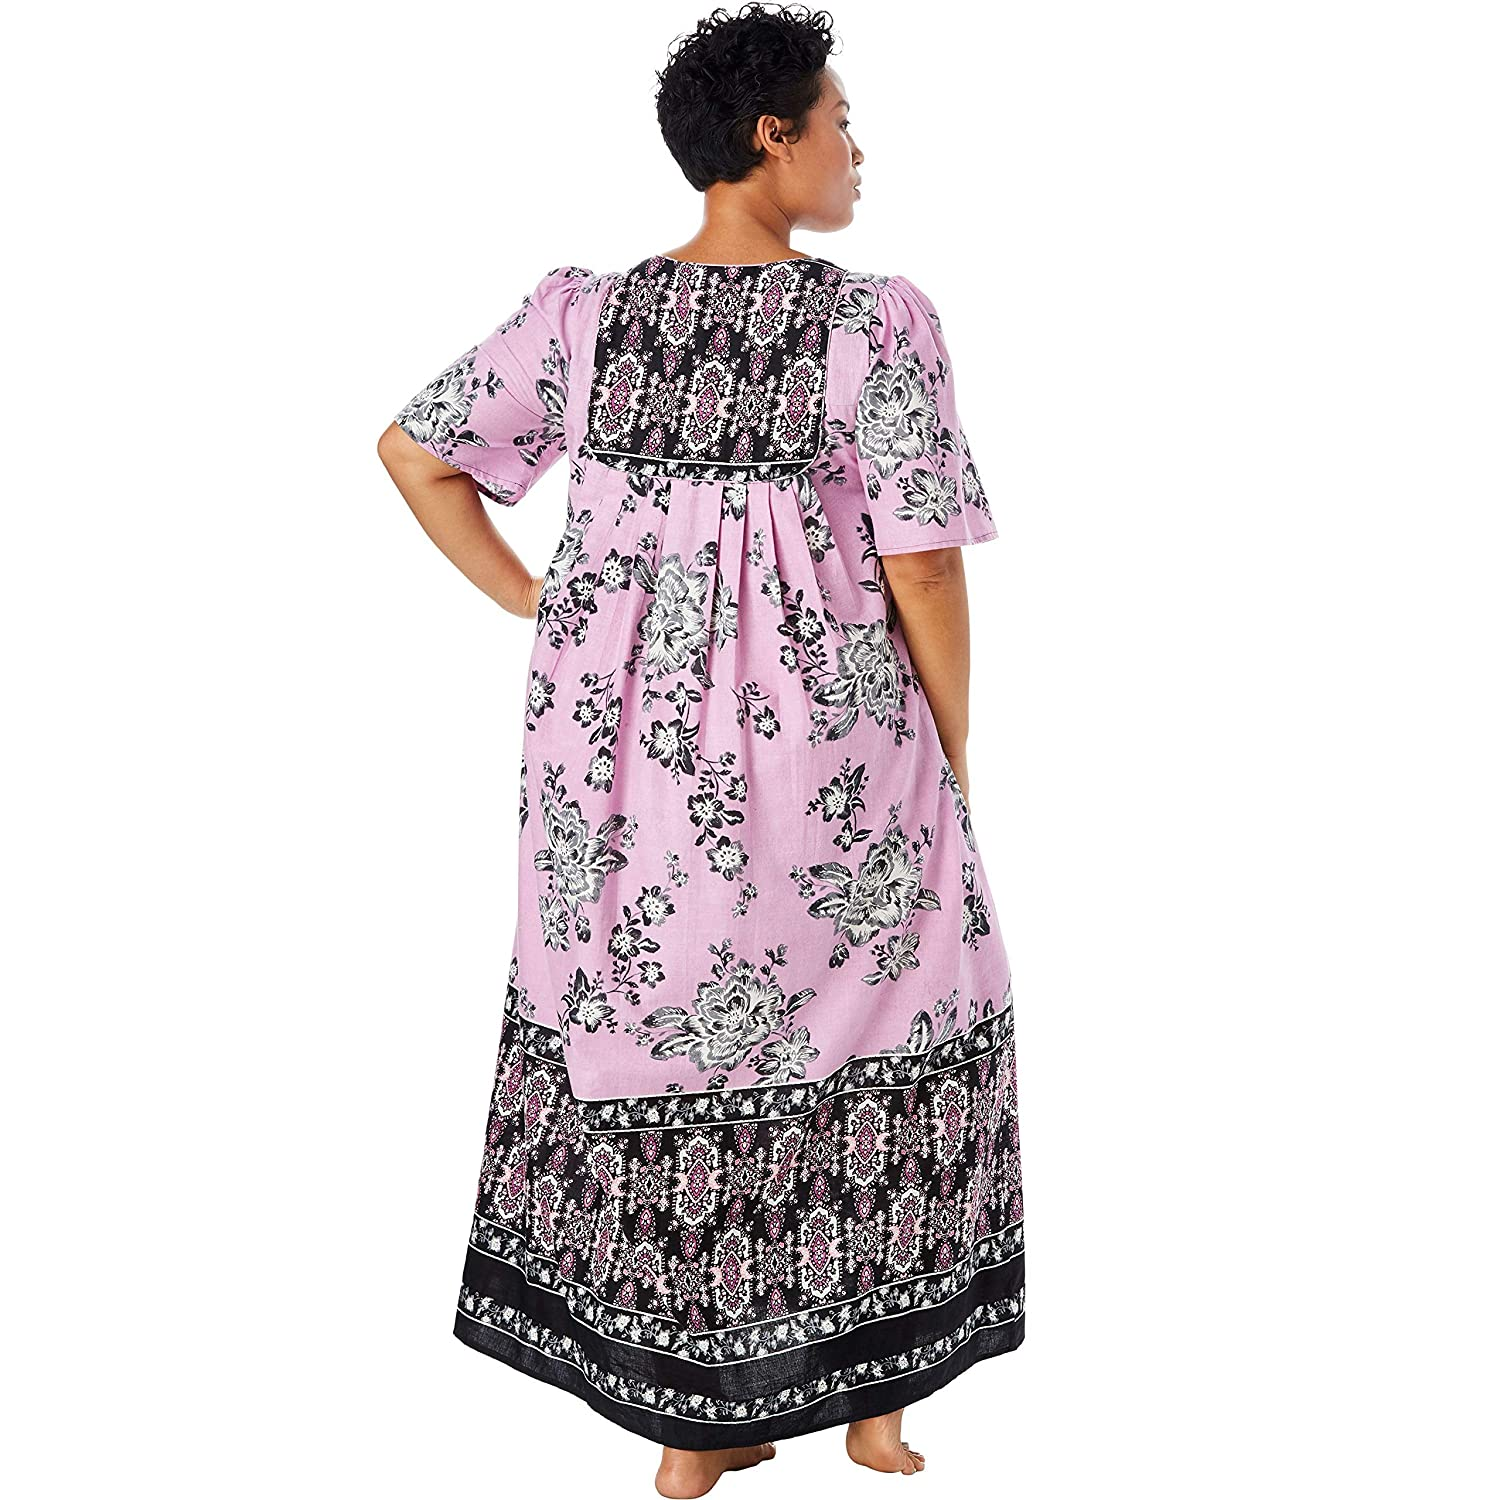 9b1fb5e6b4fdb Only Necessities Women s Plus Size Mixed Print Long Lounger at Amazon  Women s Clothing store